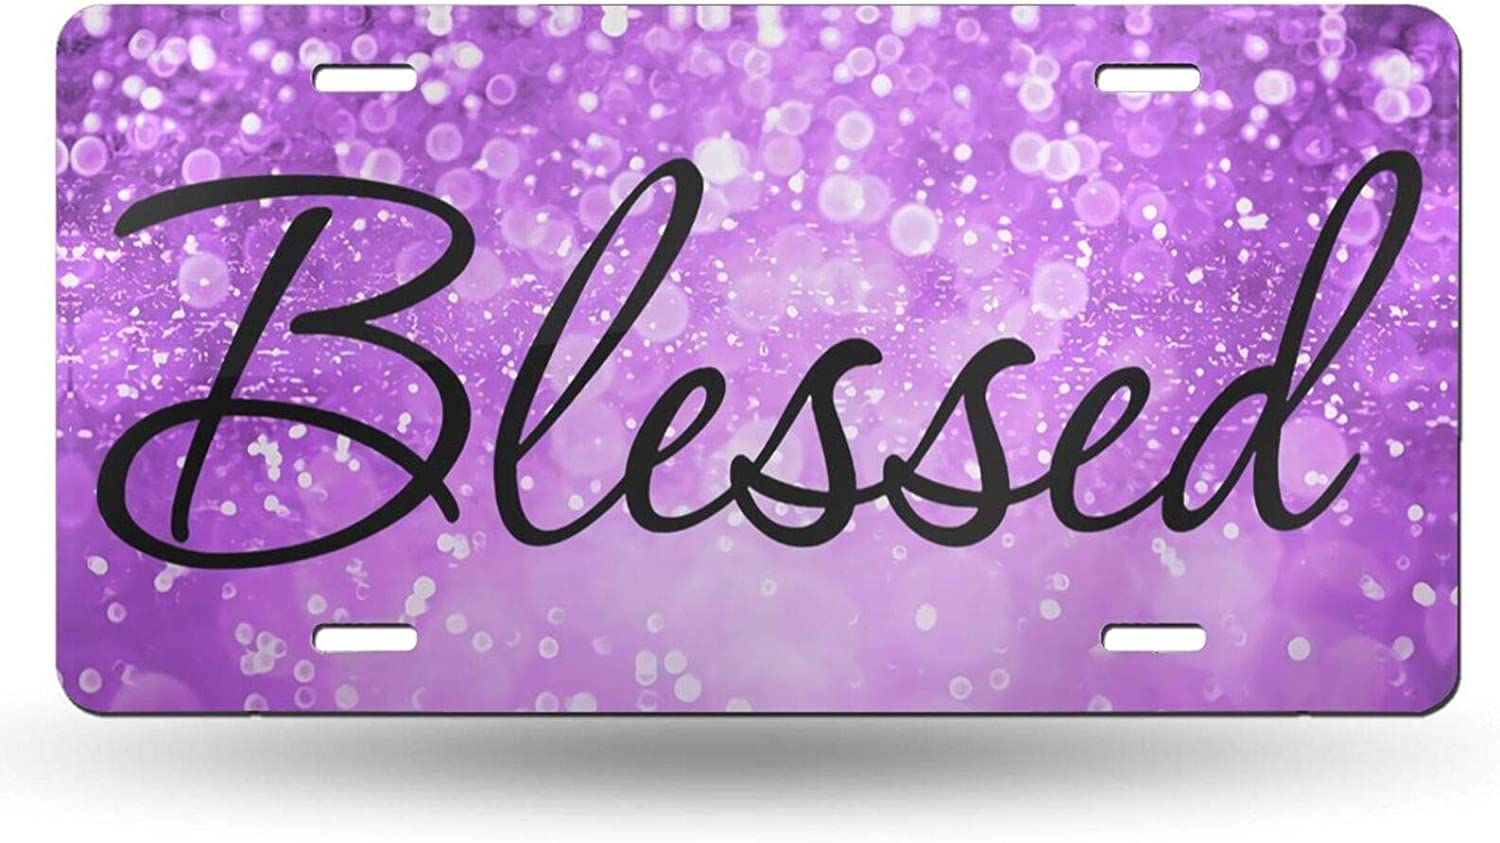 Christian Religious Blessed Purple Glitter Bling Blessed Decorative Car Front License Plate Vanity Tag Car Plate Aluminum Novelty License Plates for Men/Women/Boy/Girls Car - 6 X 12 Inch (4 Holes)